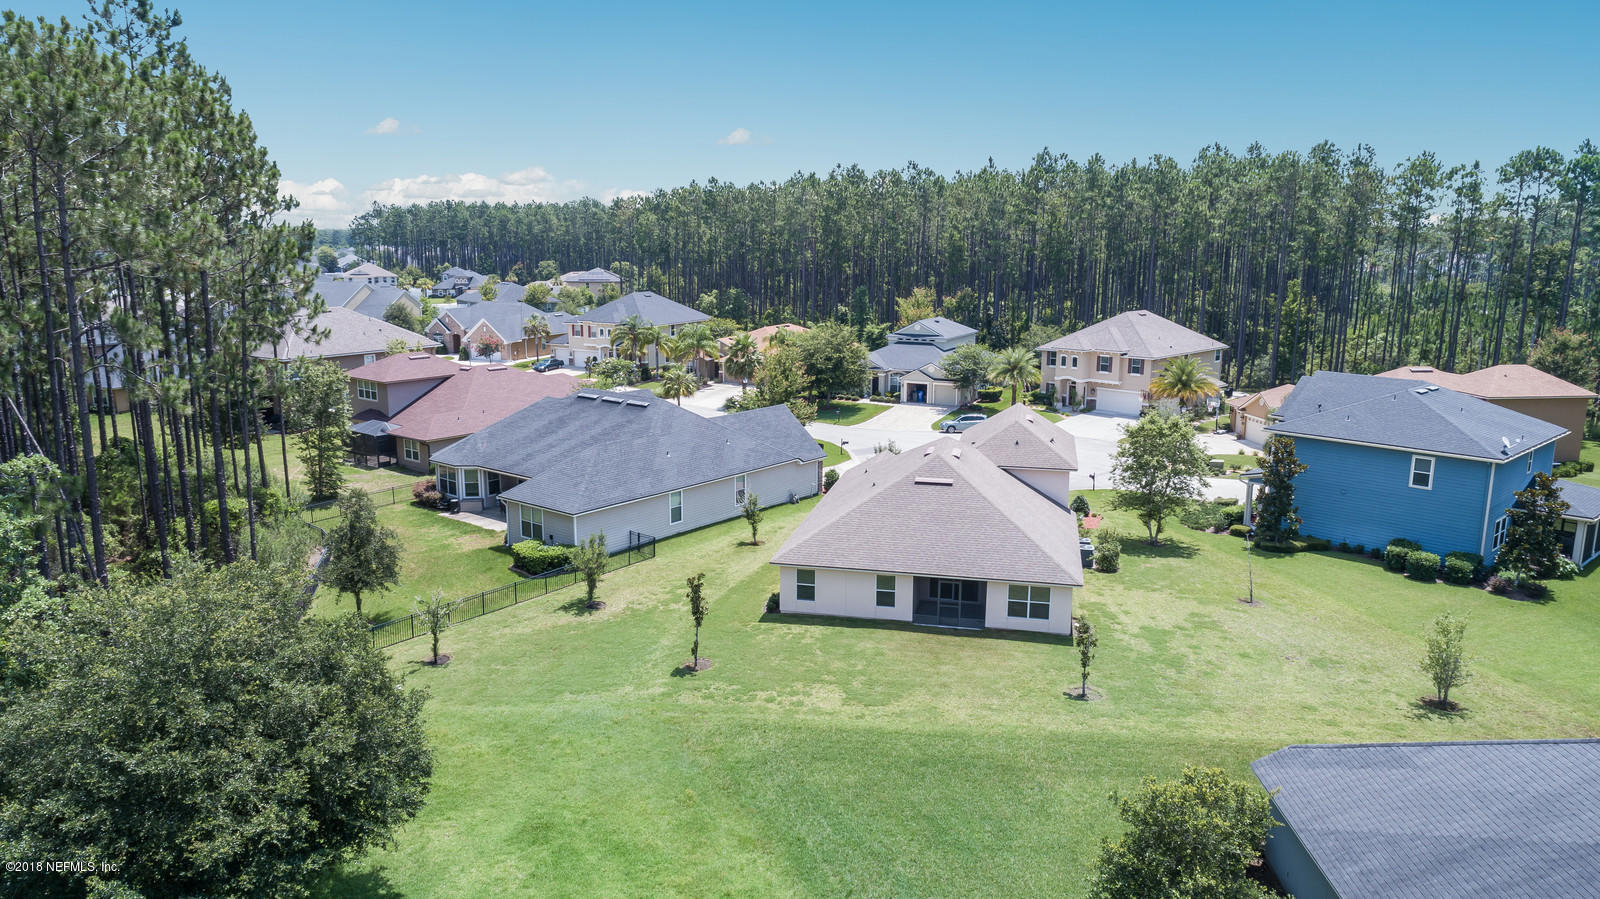 525 ABBOTSFORD CT FRUIT COVE - 27